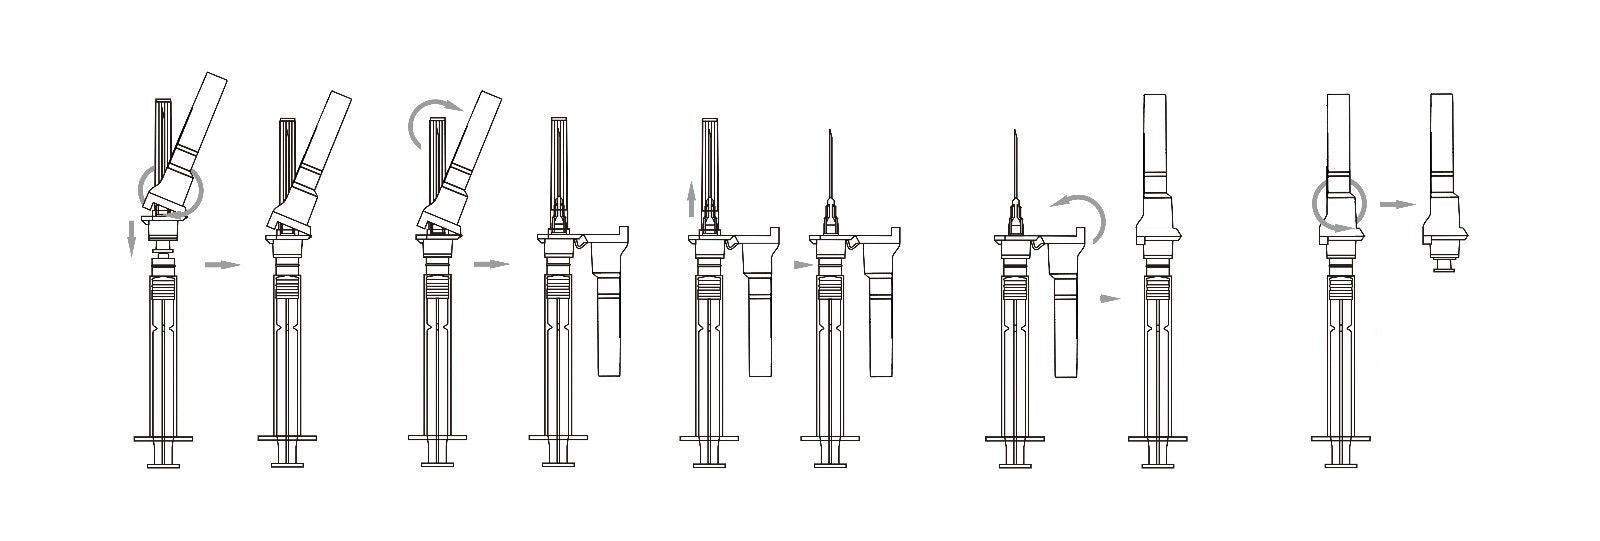 how to use syringe & needles safety feature Rays